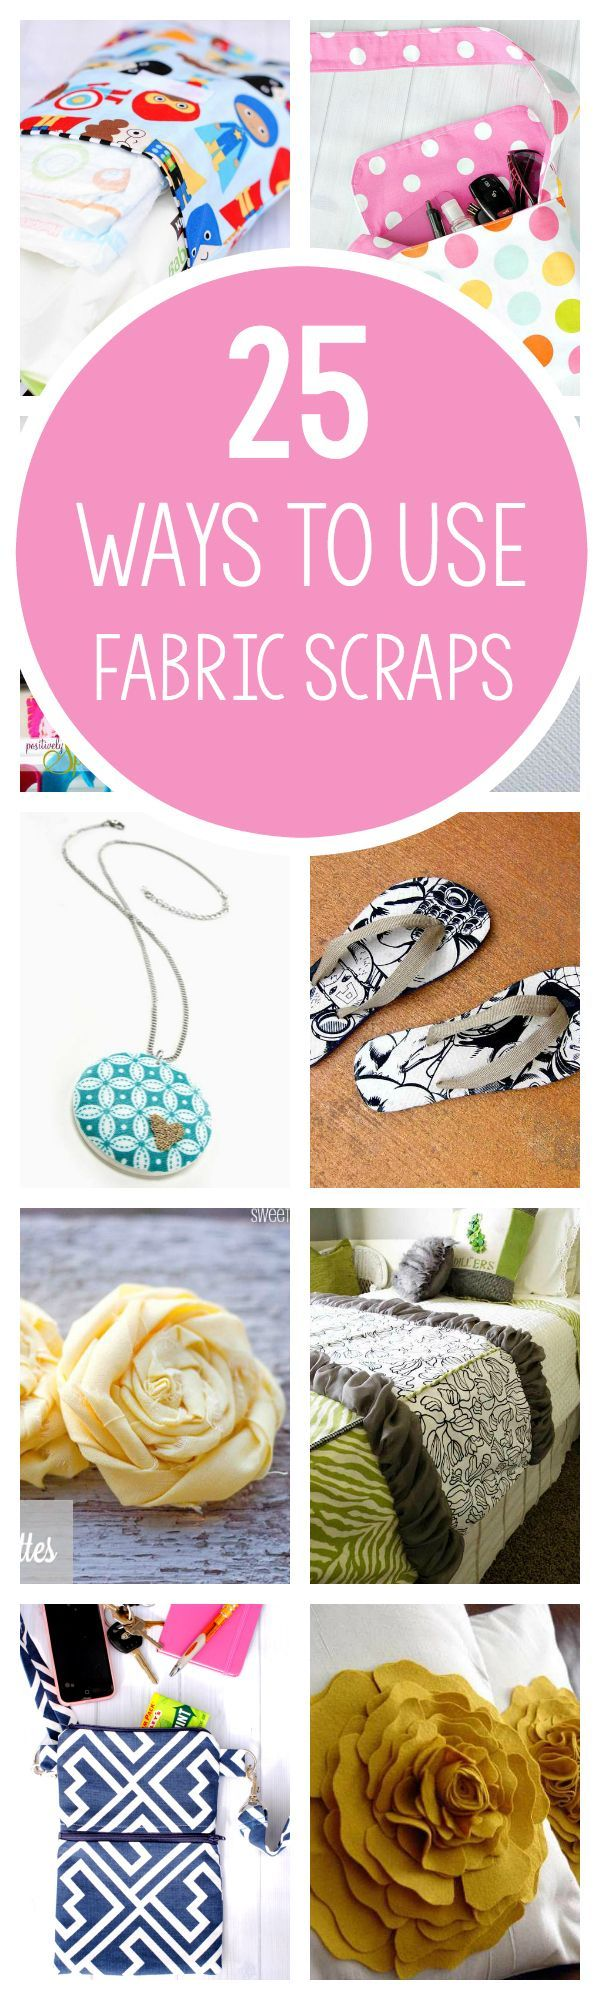 Ways to Use Fabric Scraps